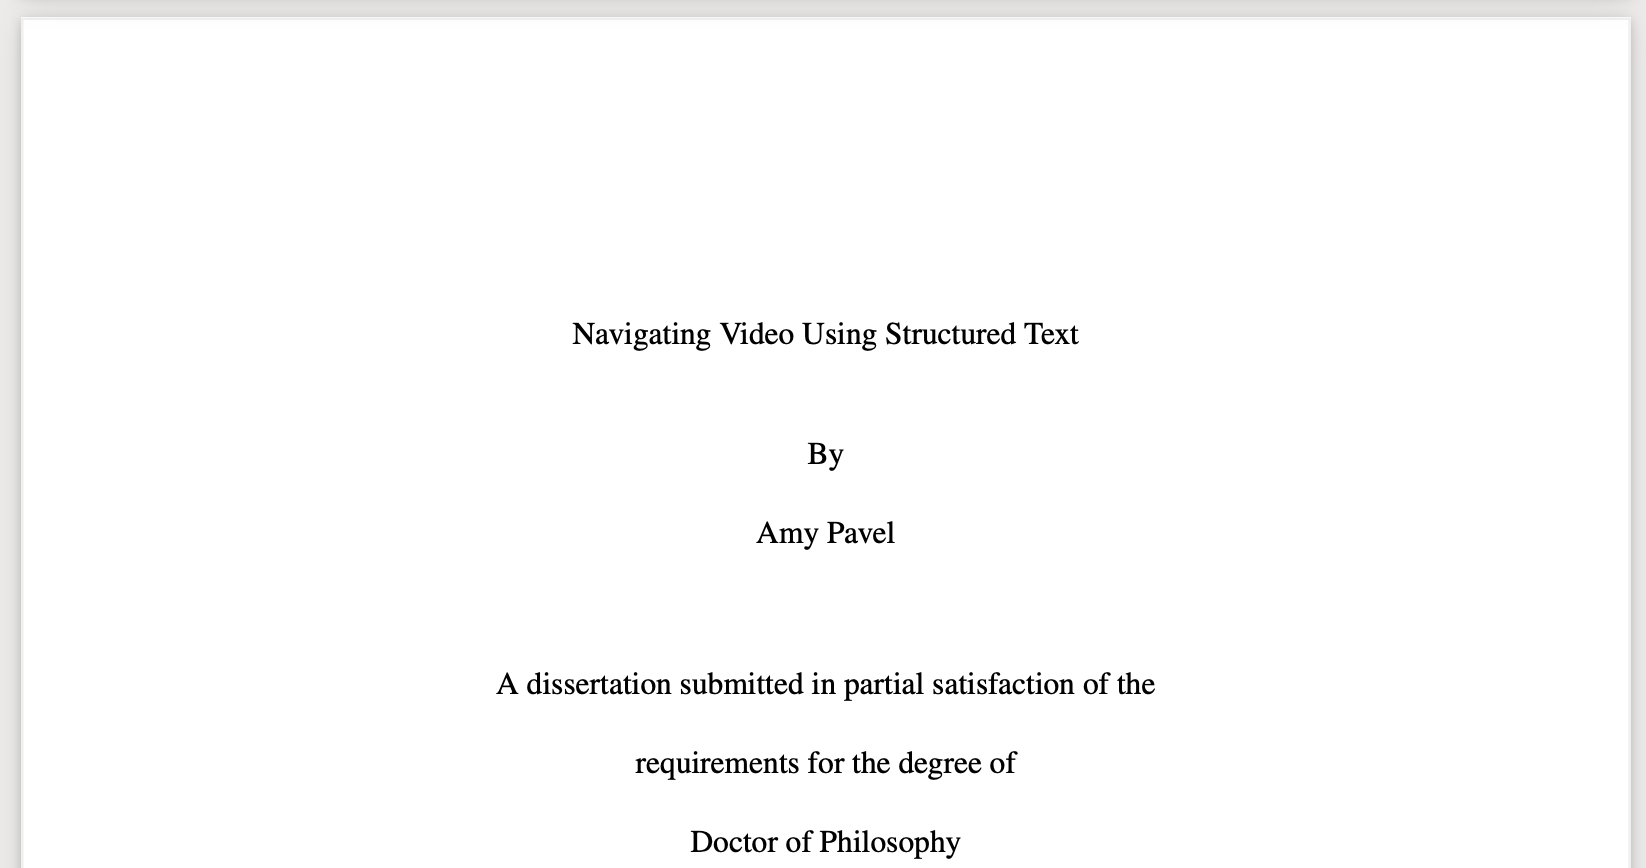 Title page of dissertation